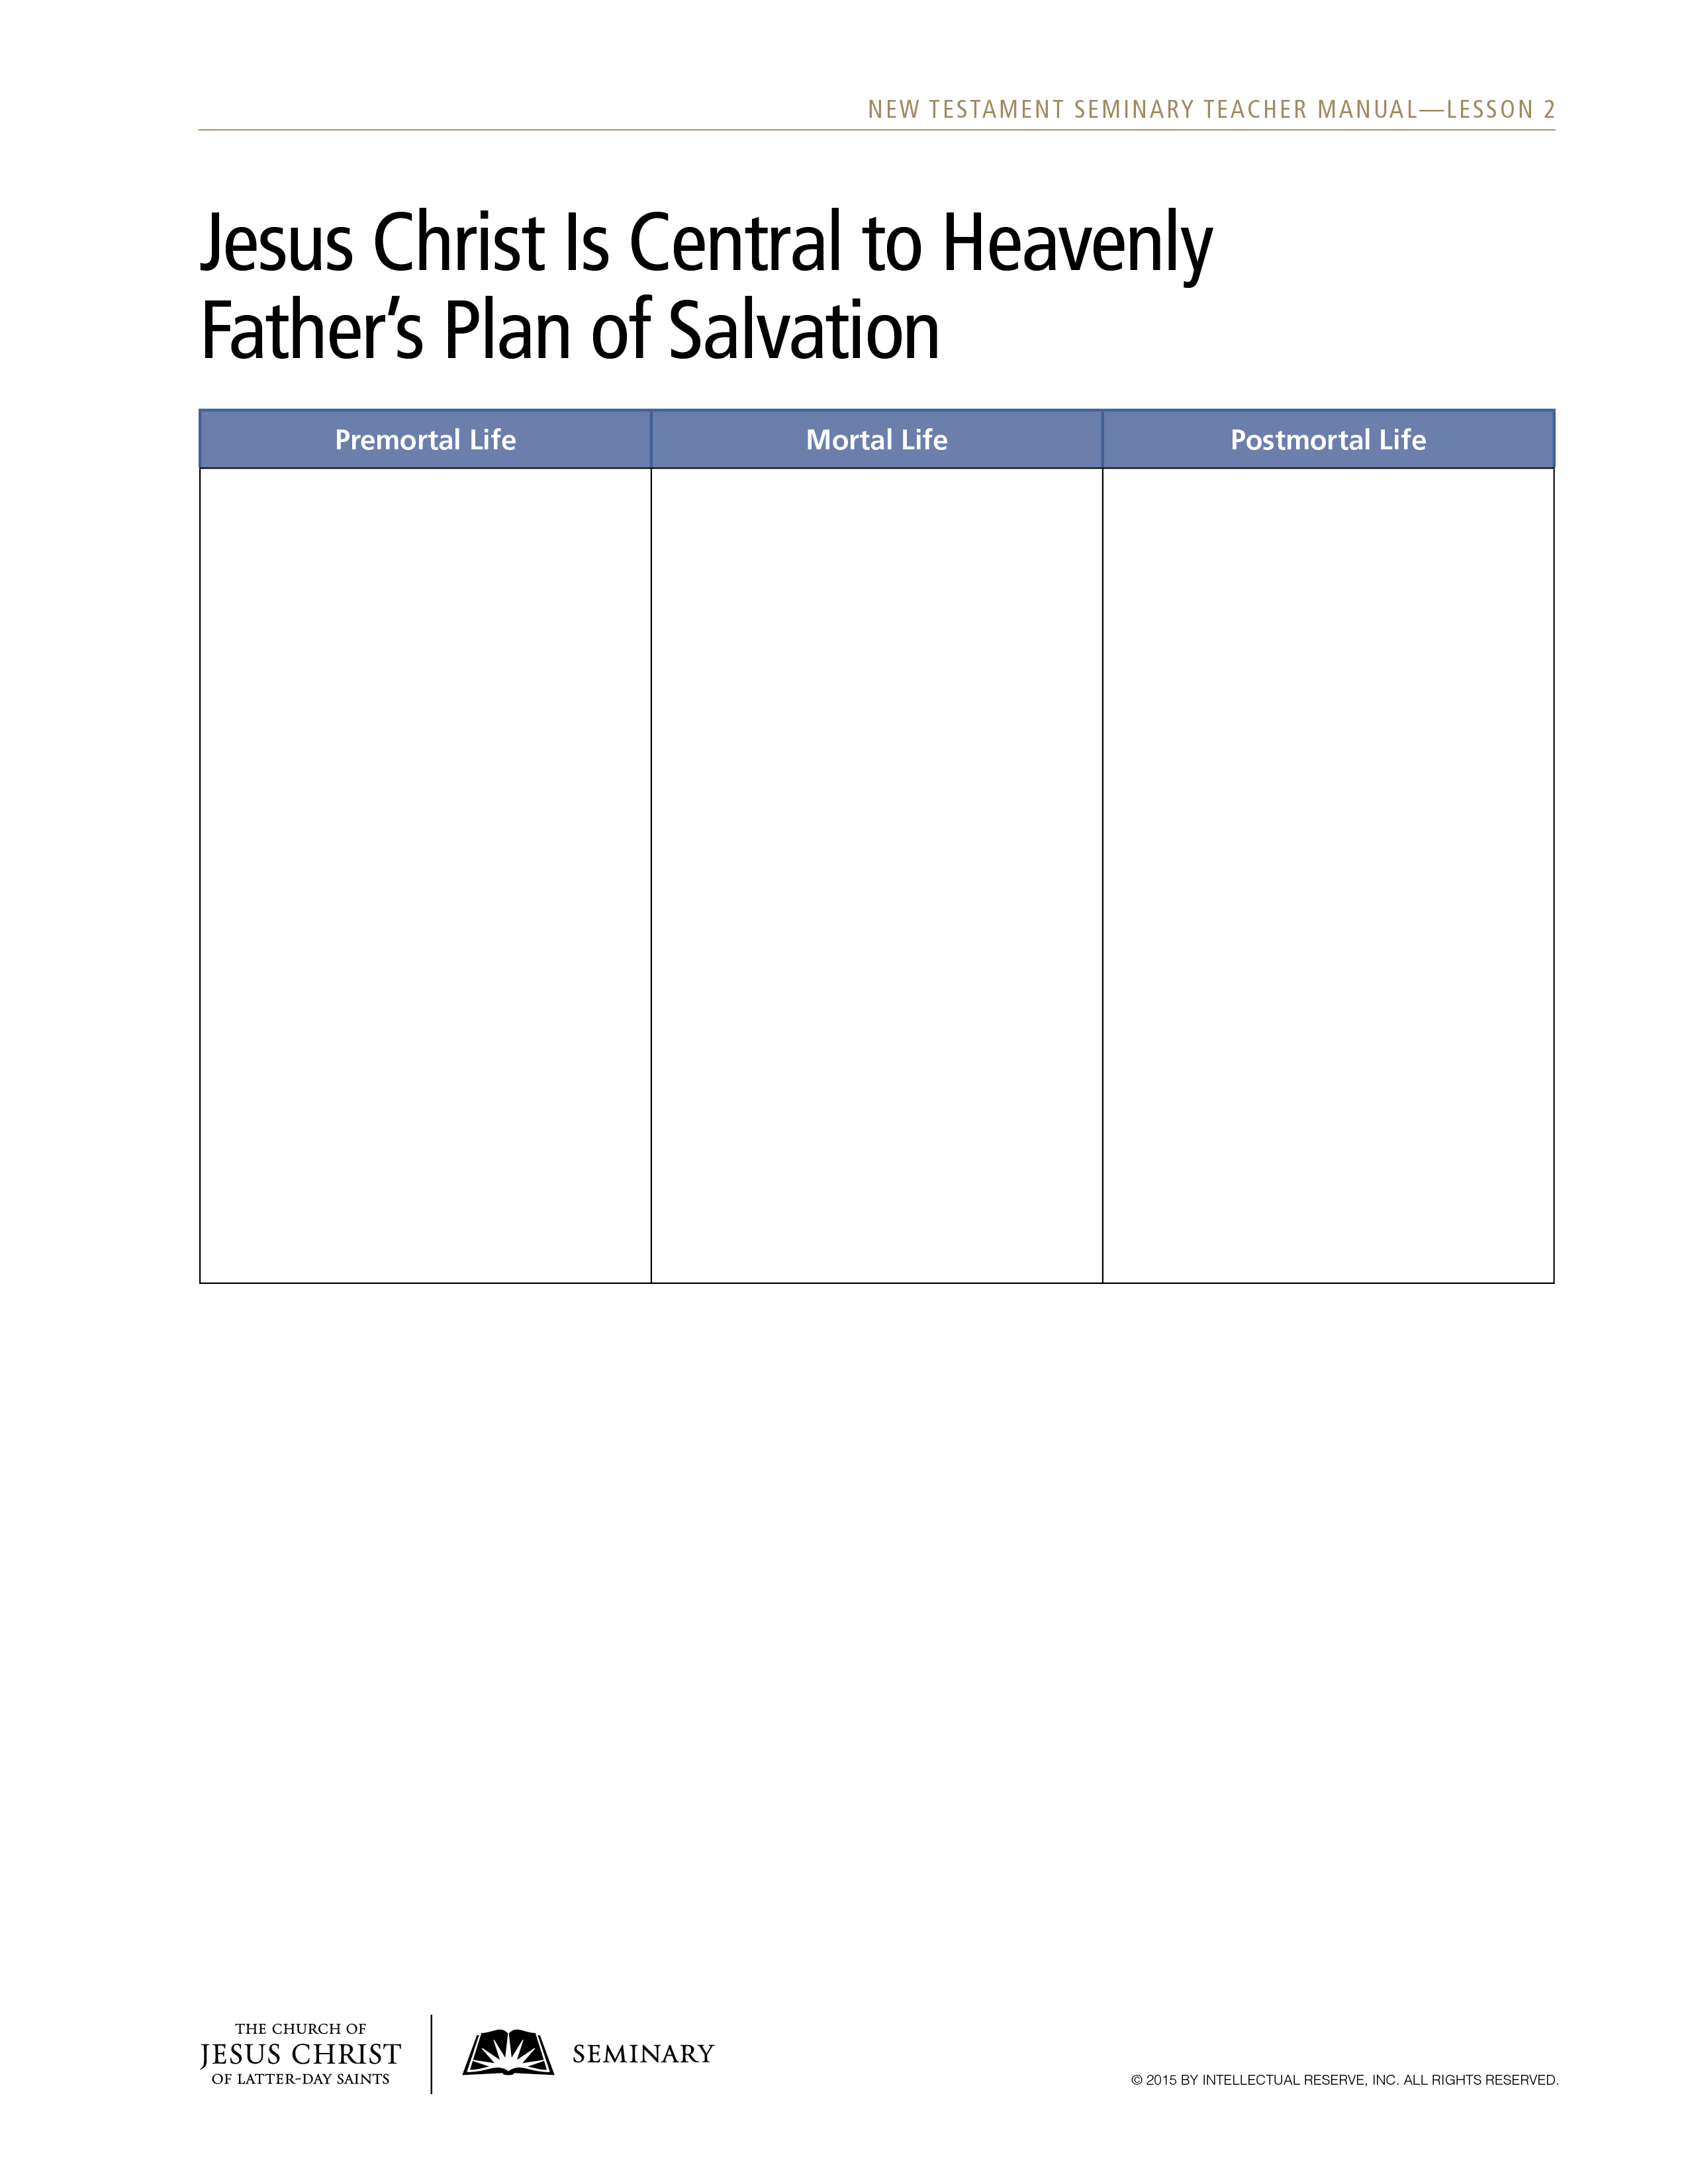 Lesson 2: The Plan of Salvation